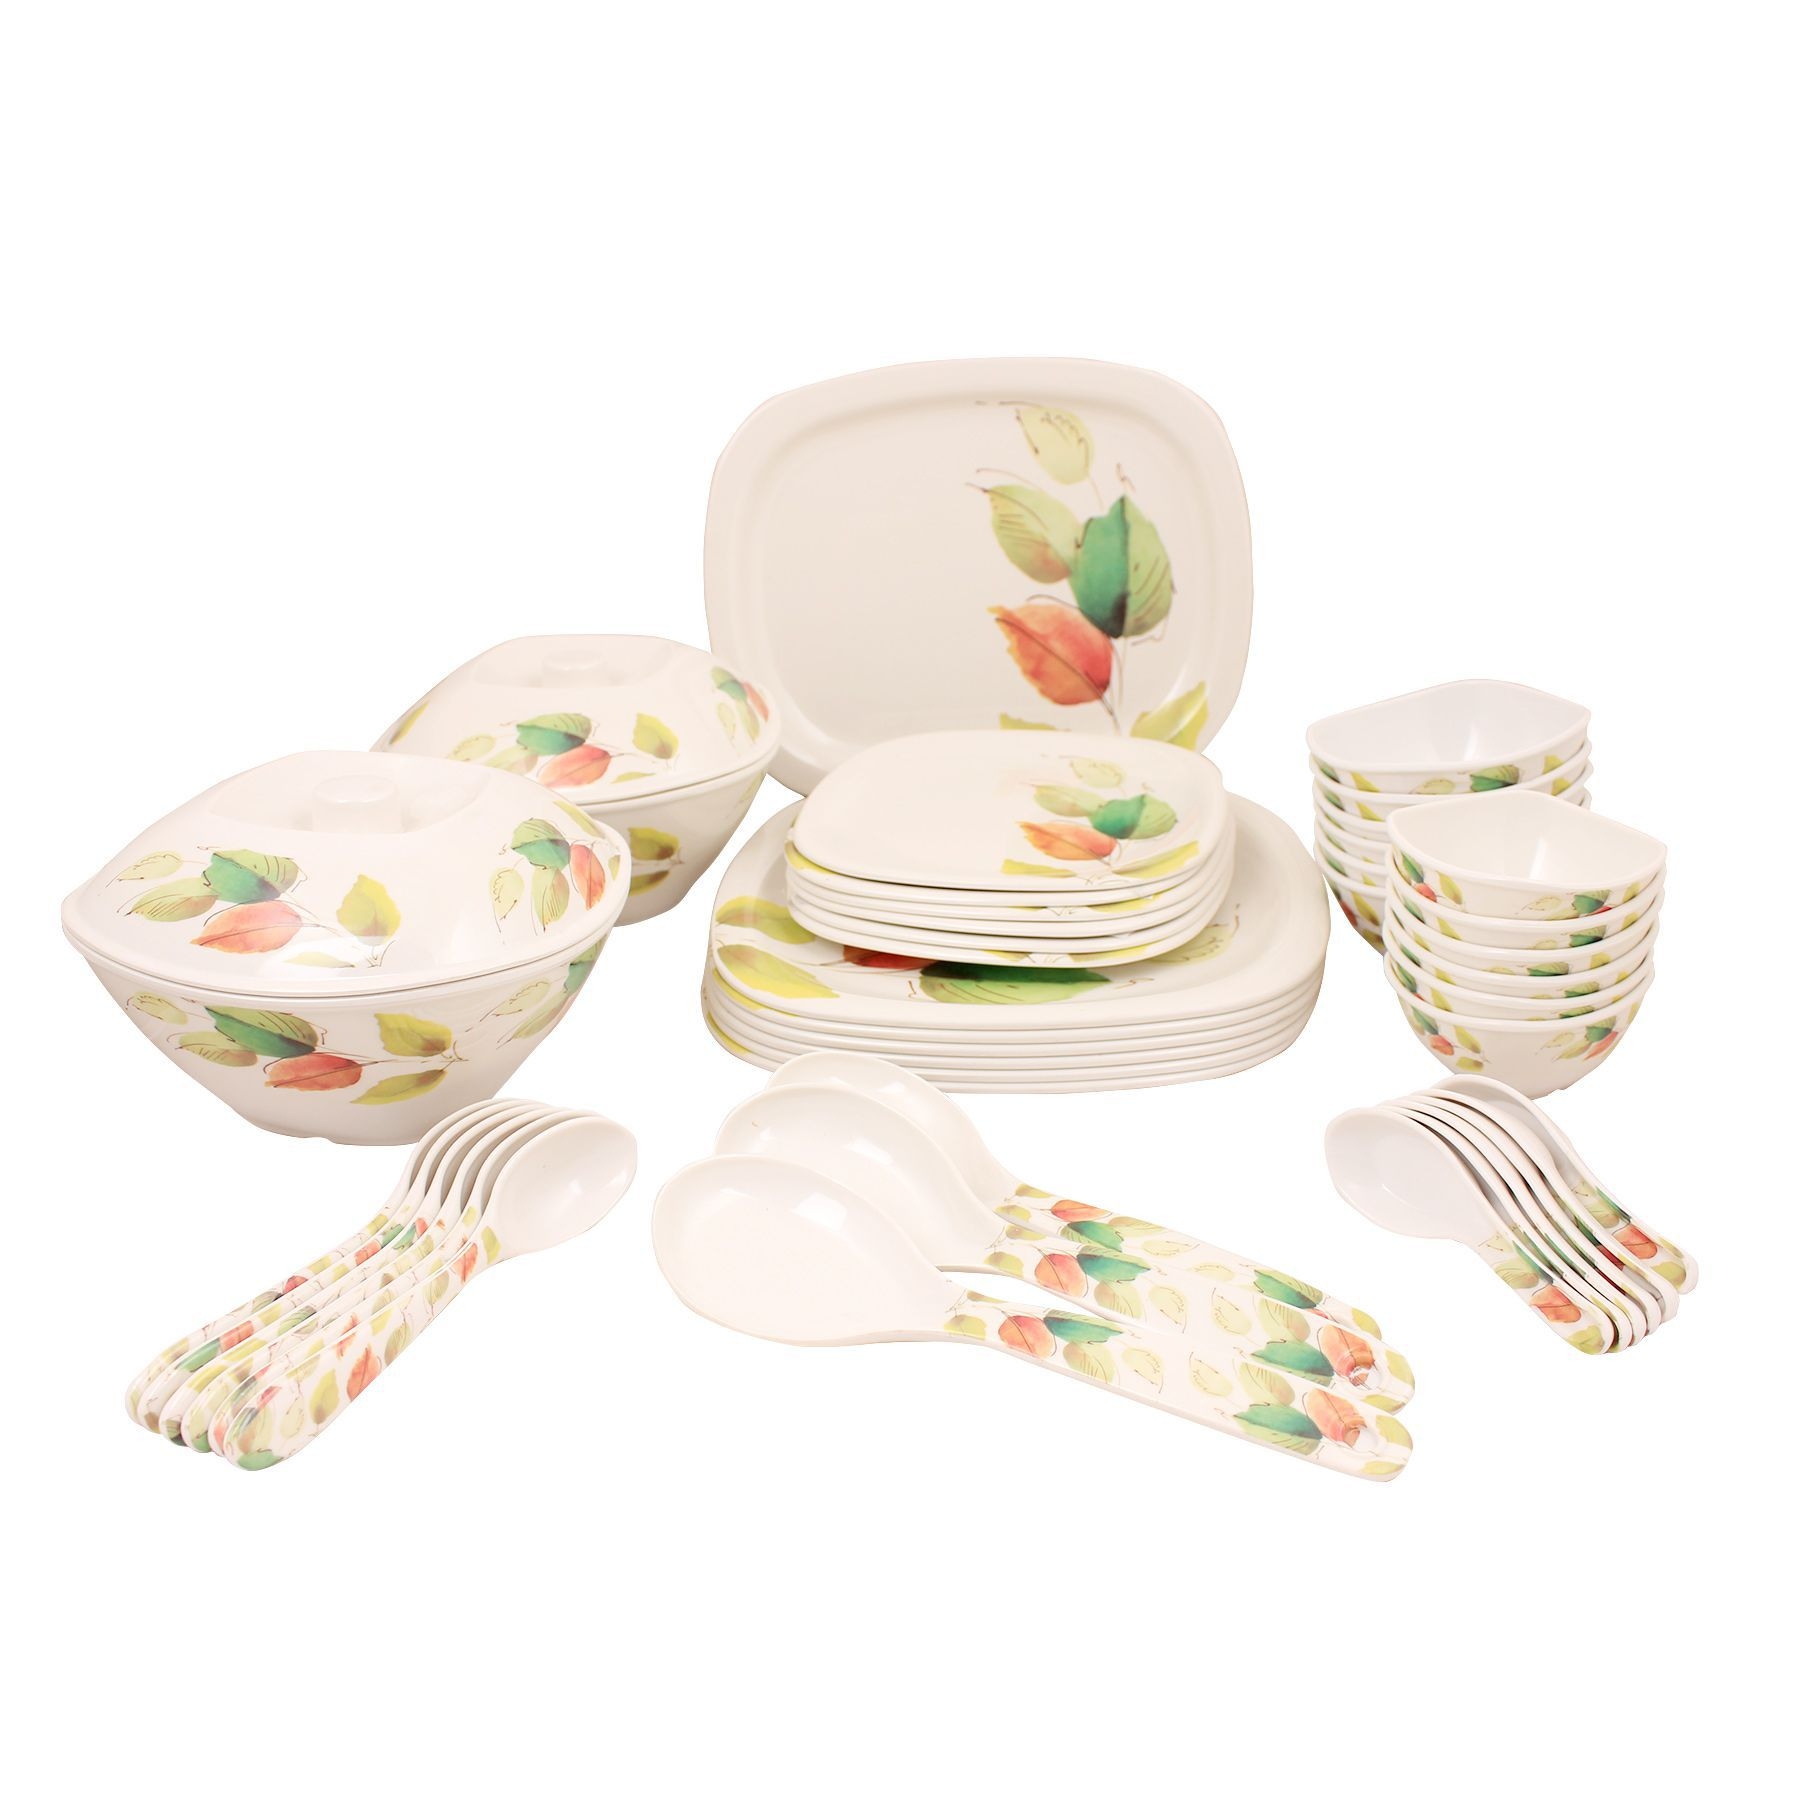 WHITE GOLD WGSQ44-LEF Melamine Dinner Set of 44 Pieces